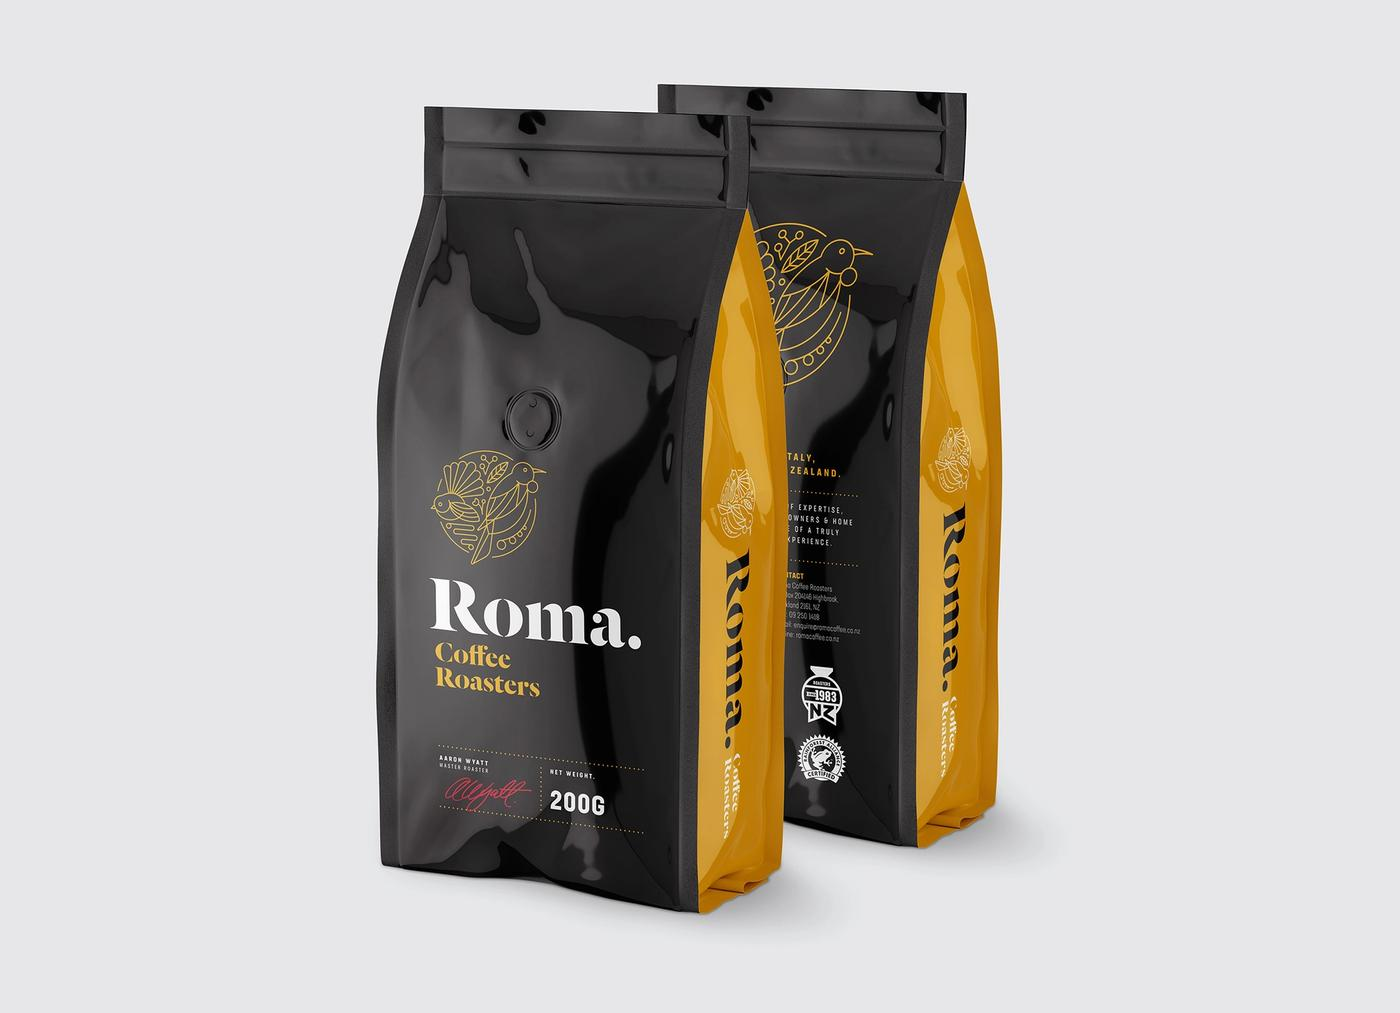 Roma Coffee Roasters 200g bag